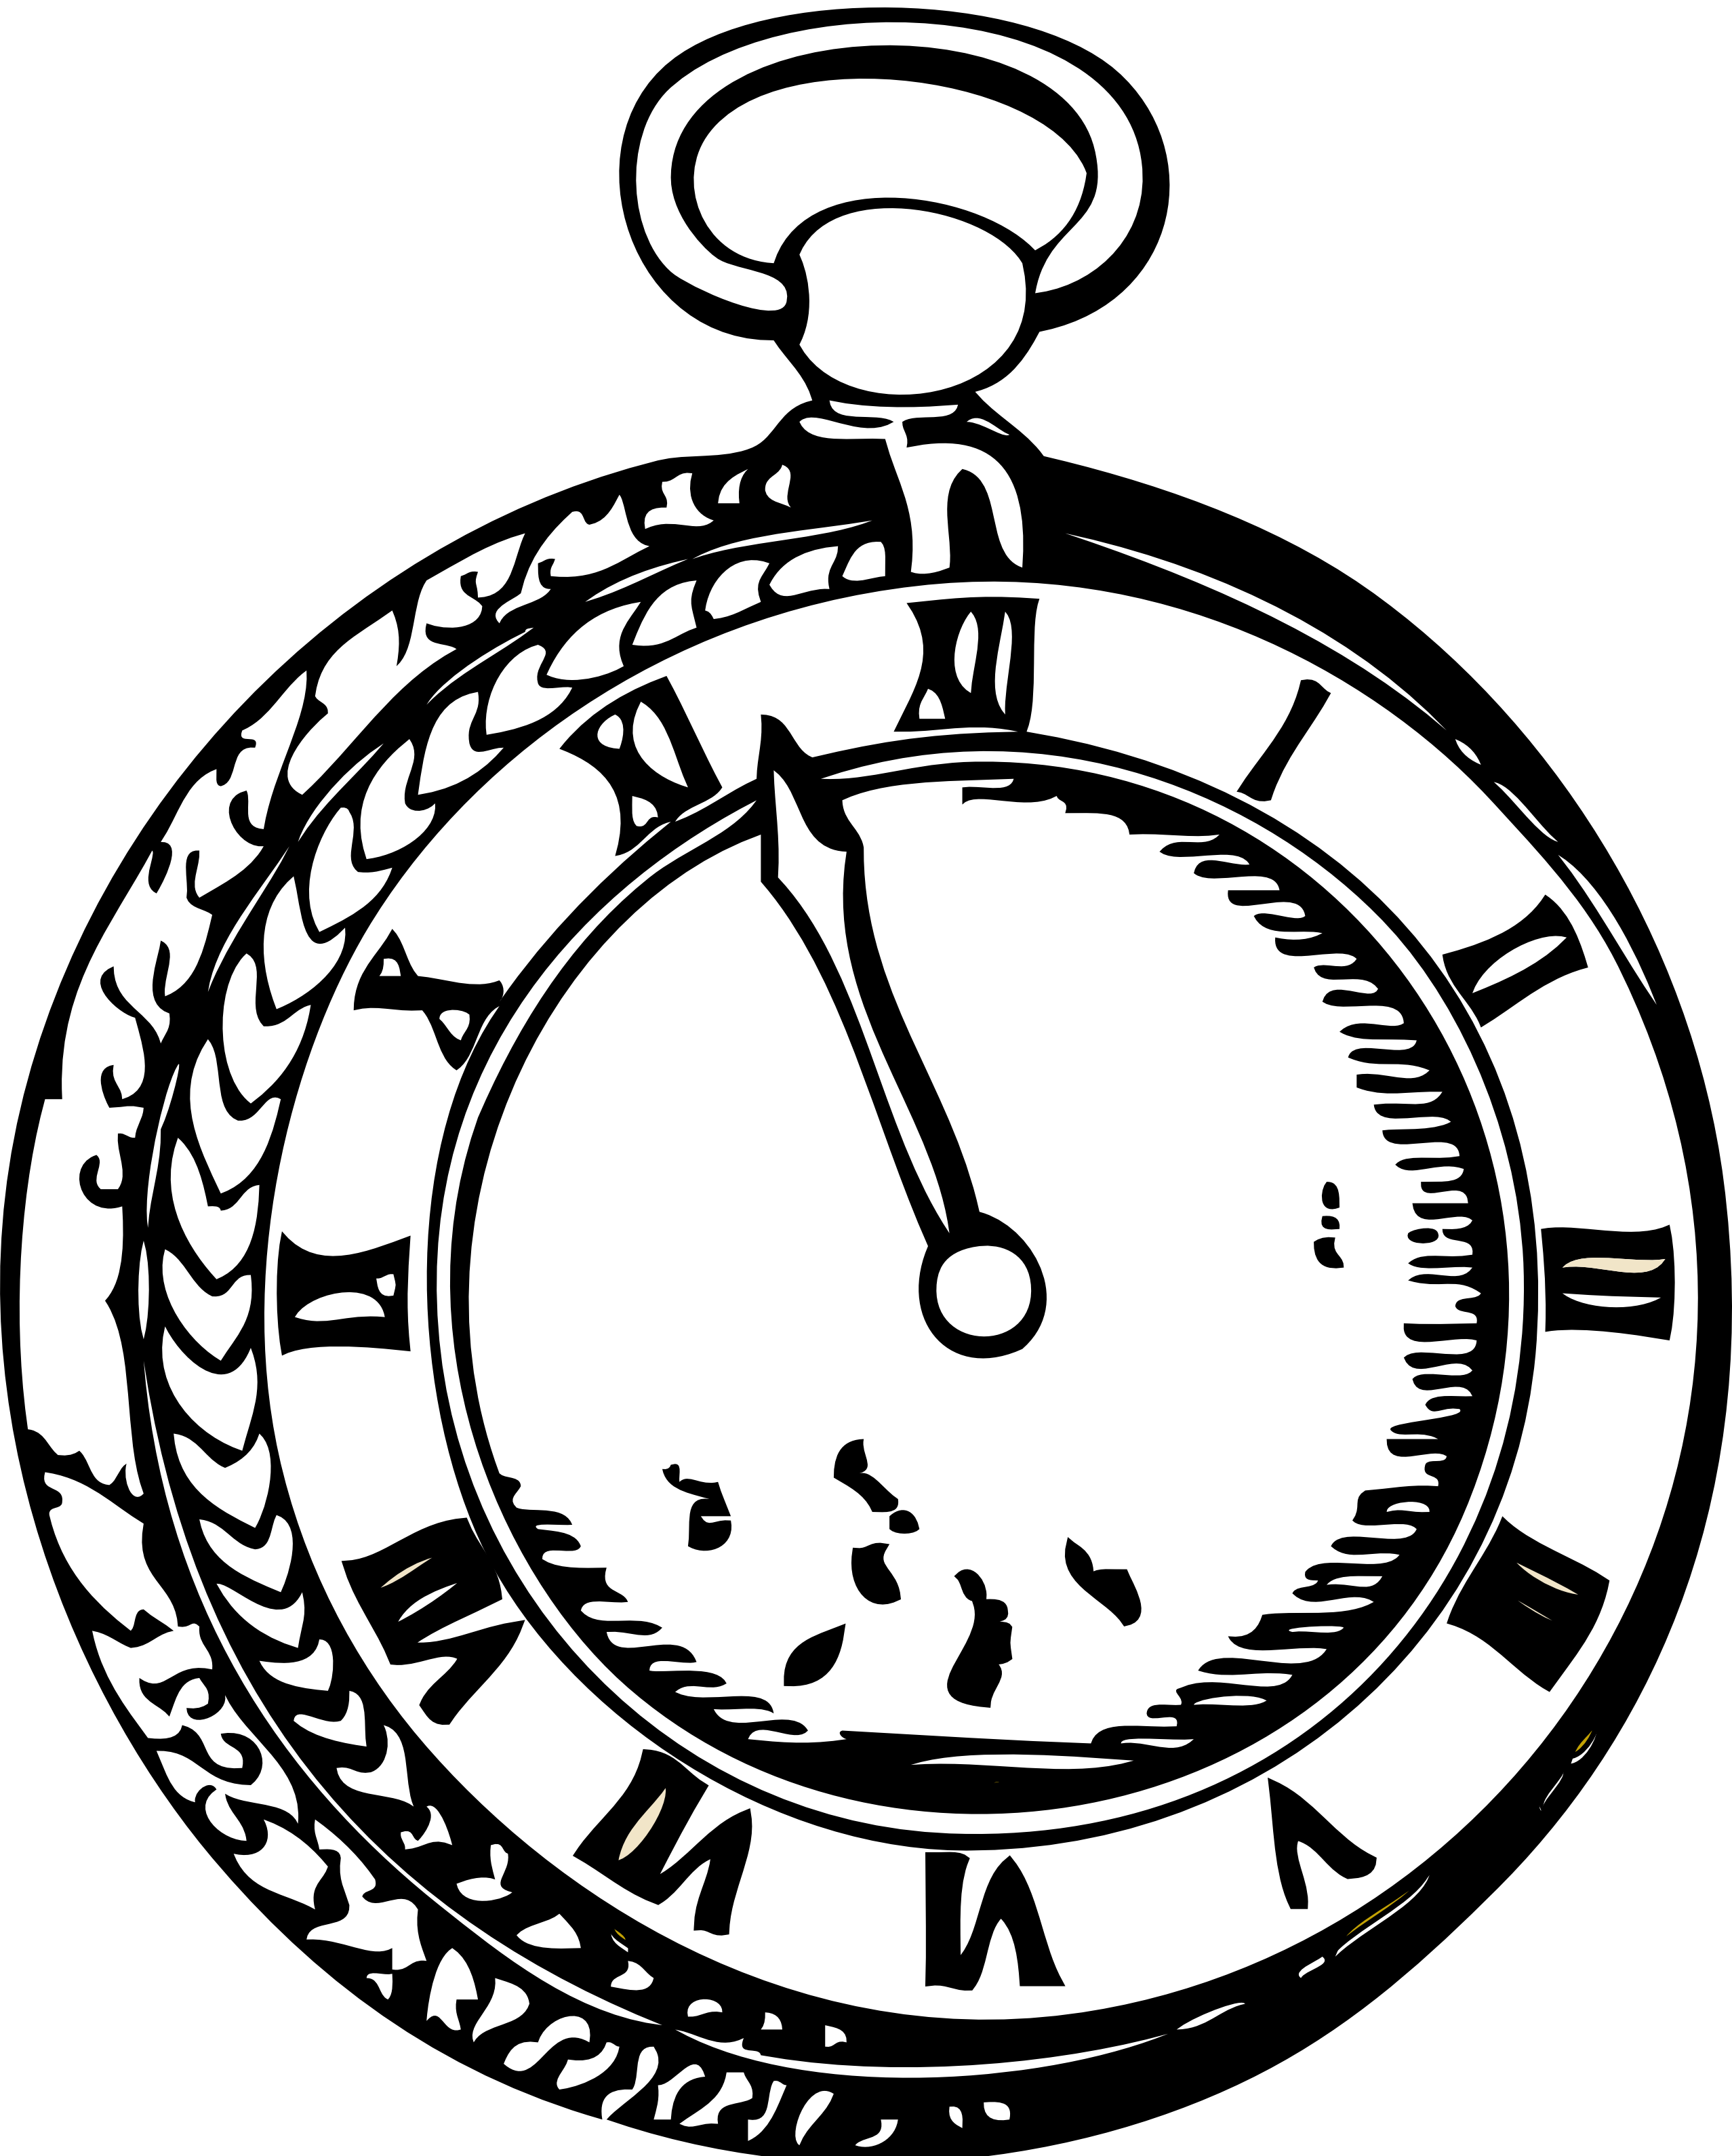 pin Pocket Watch clipart outline #4 - Alice In Wonderland Pocket Watch PNG